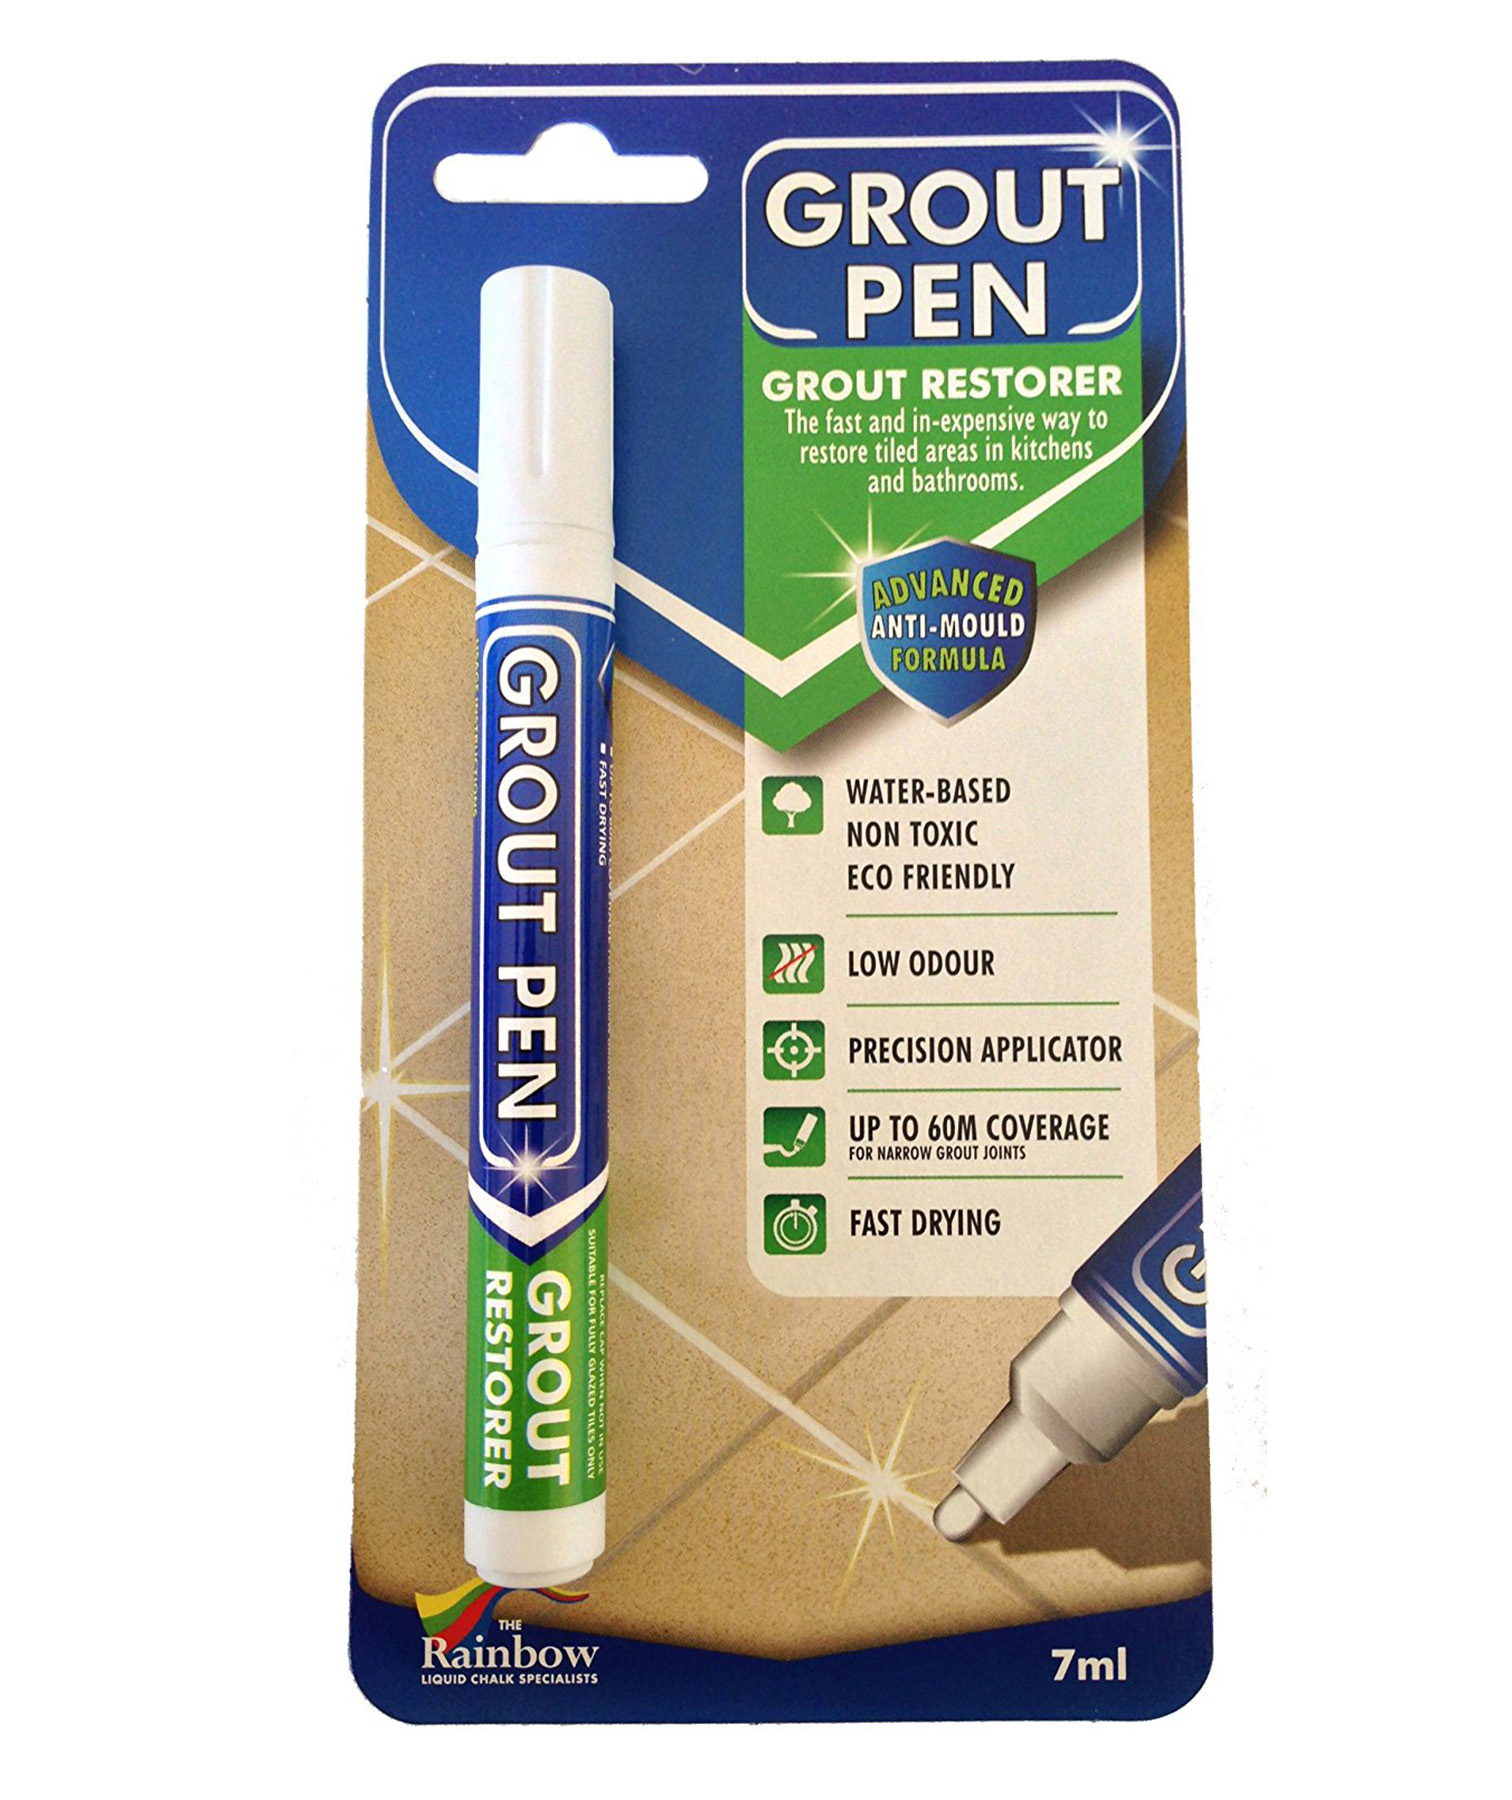 Proof That a $10 Grout Pen Is Capable of Transforming Your Entire Bathroom